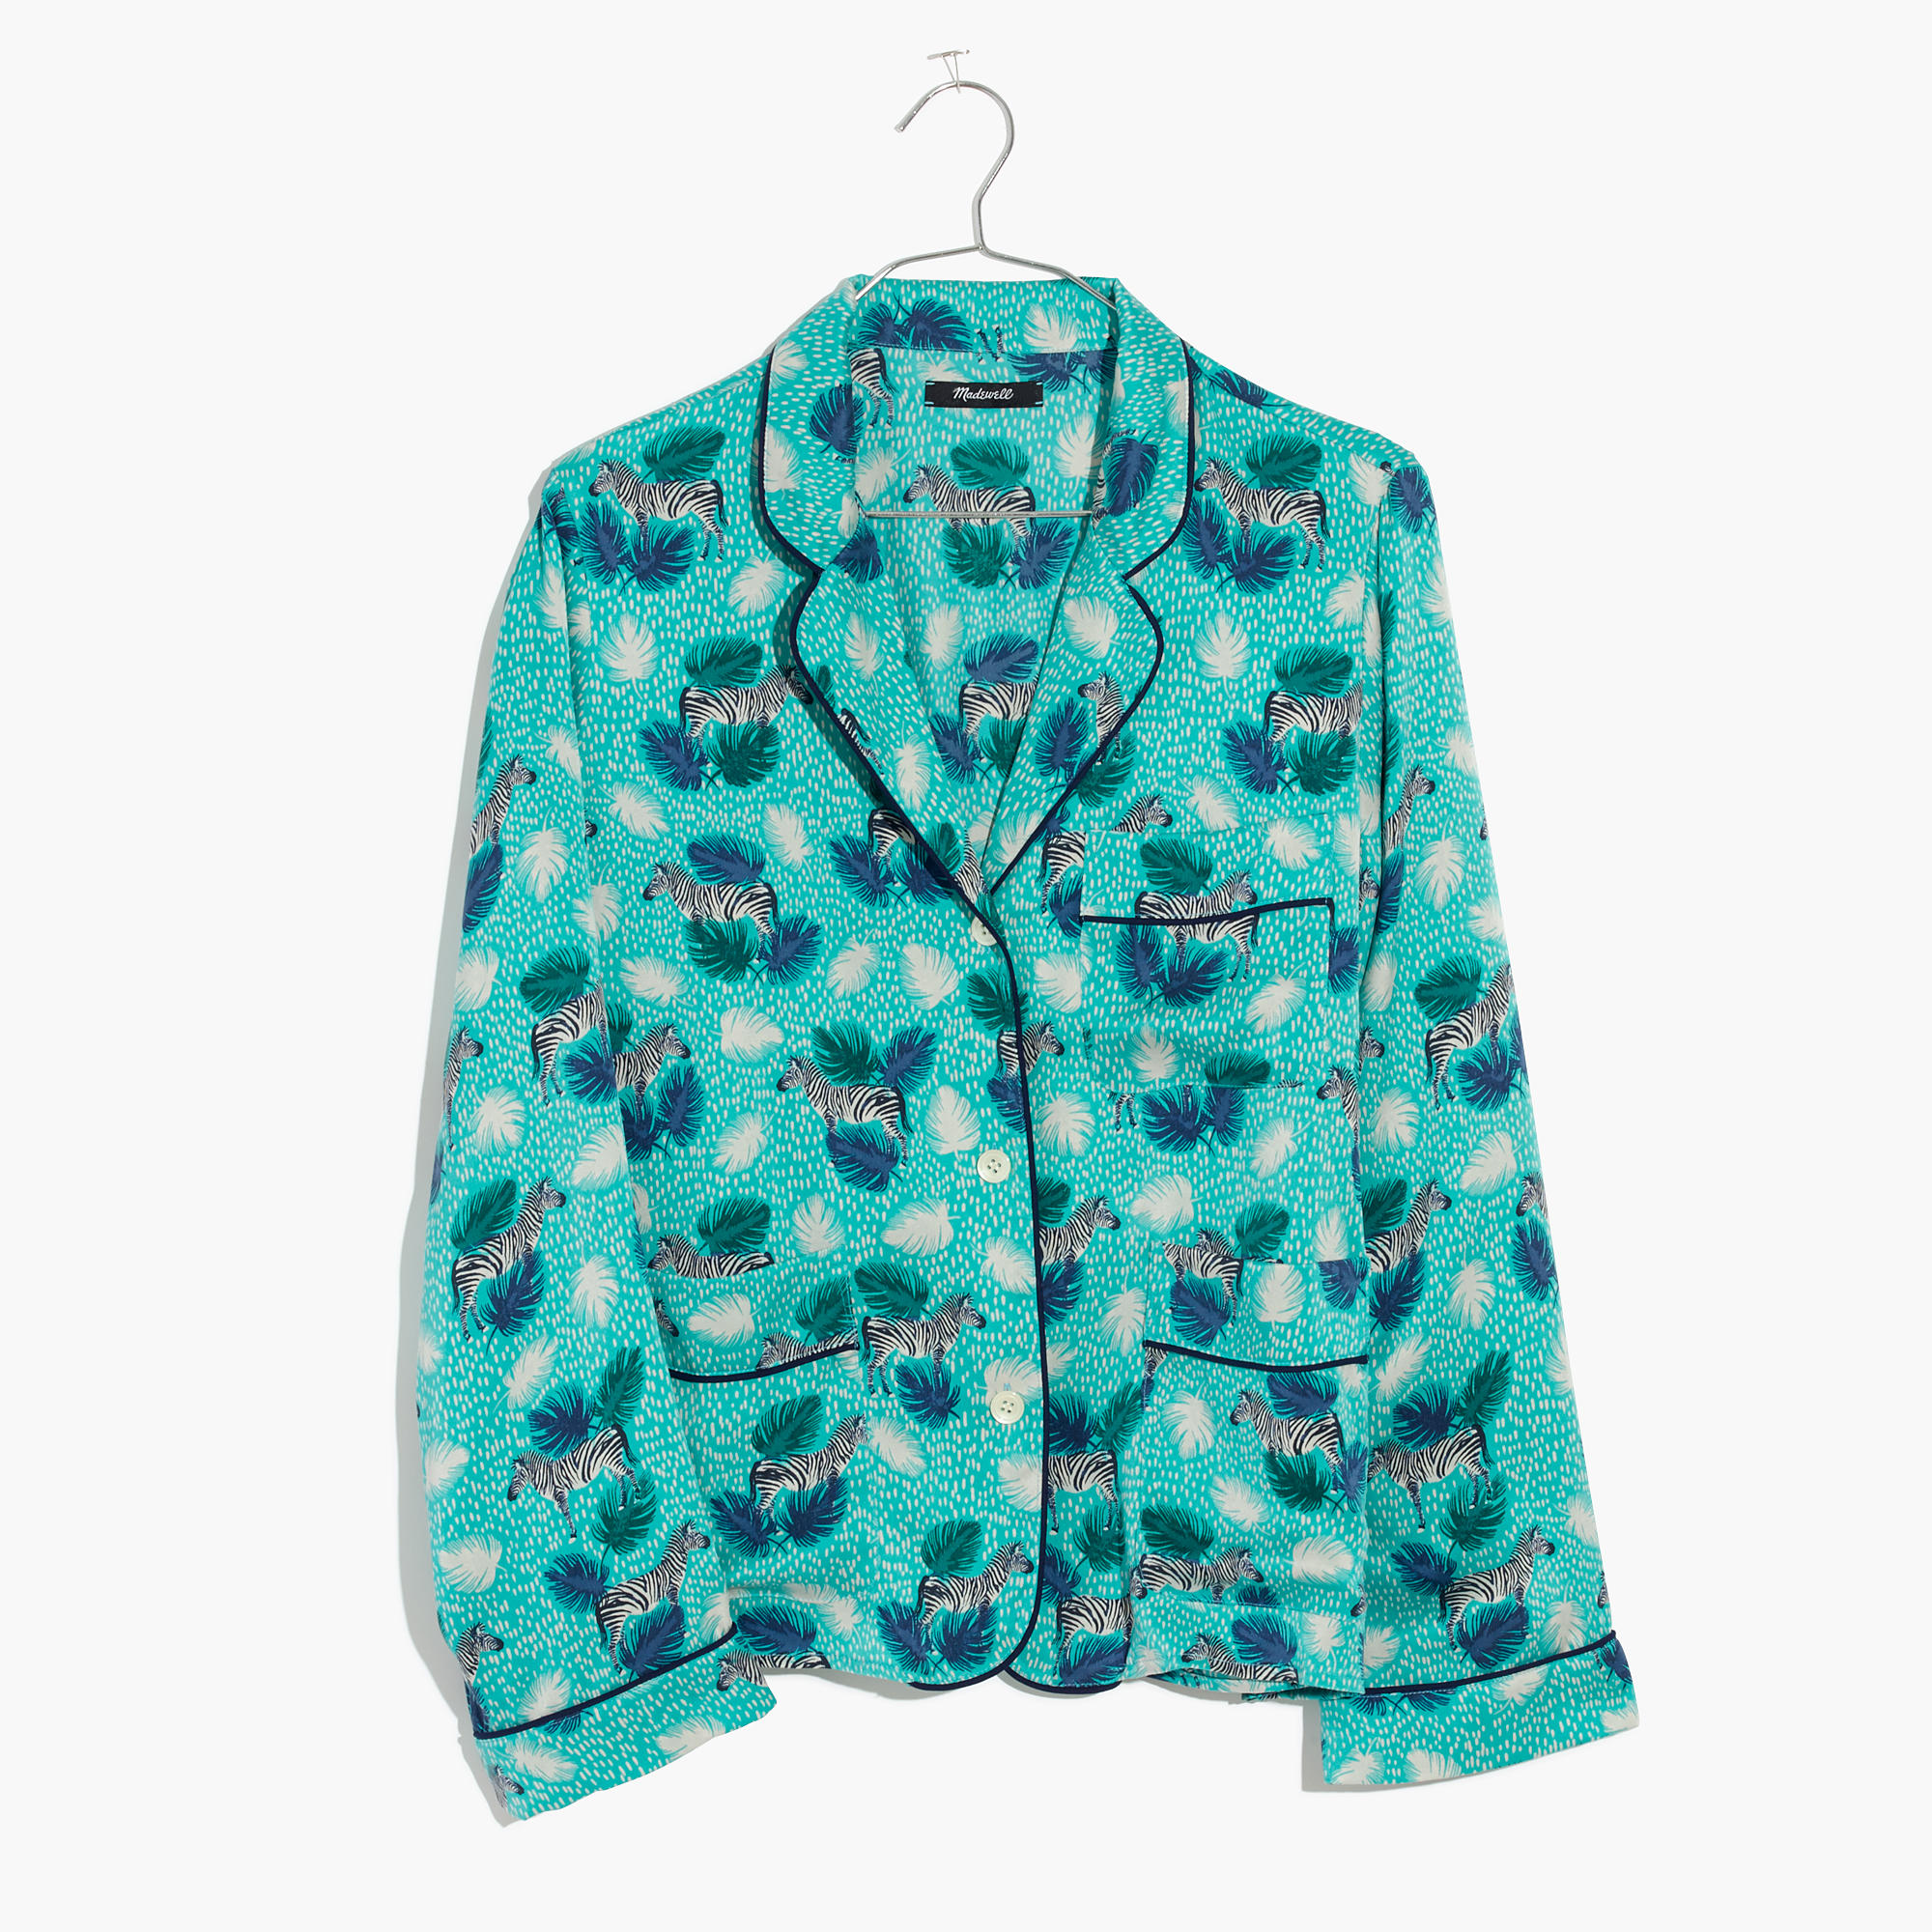 Silky zebra power yeah! A pajama shirt for any time. (via  madewell )